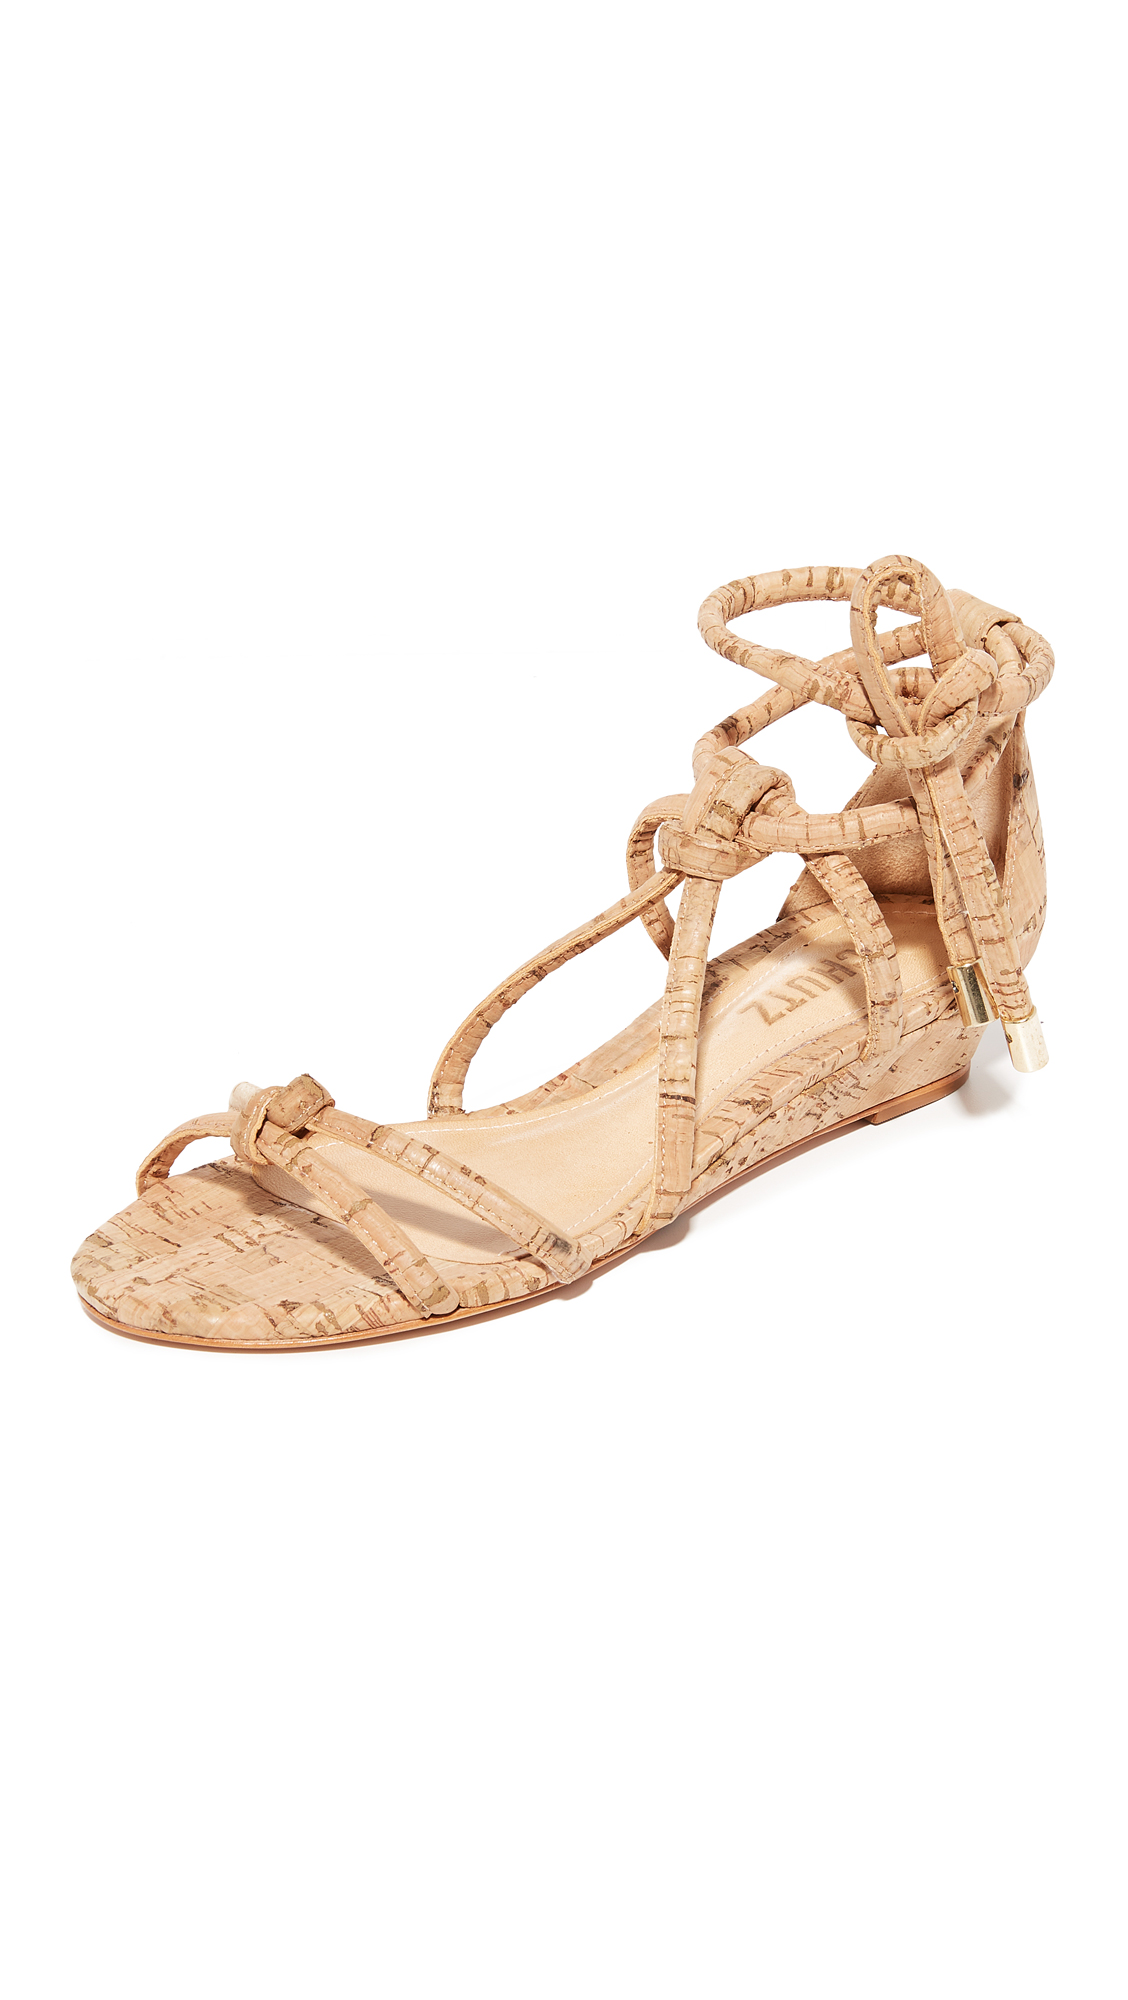 Schutz Margarete Wedge Sandals - Natural